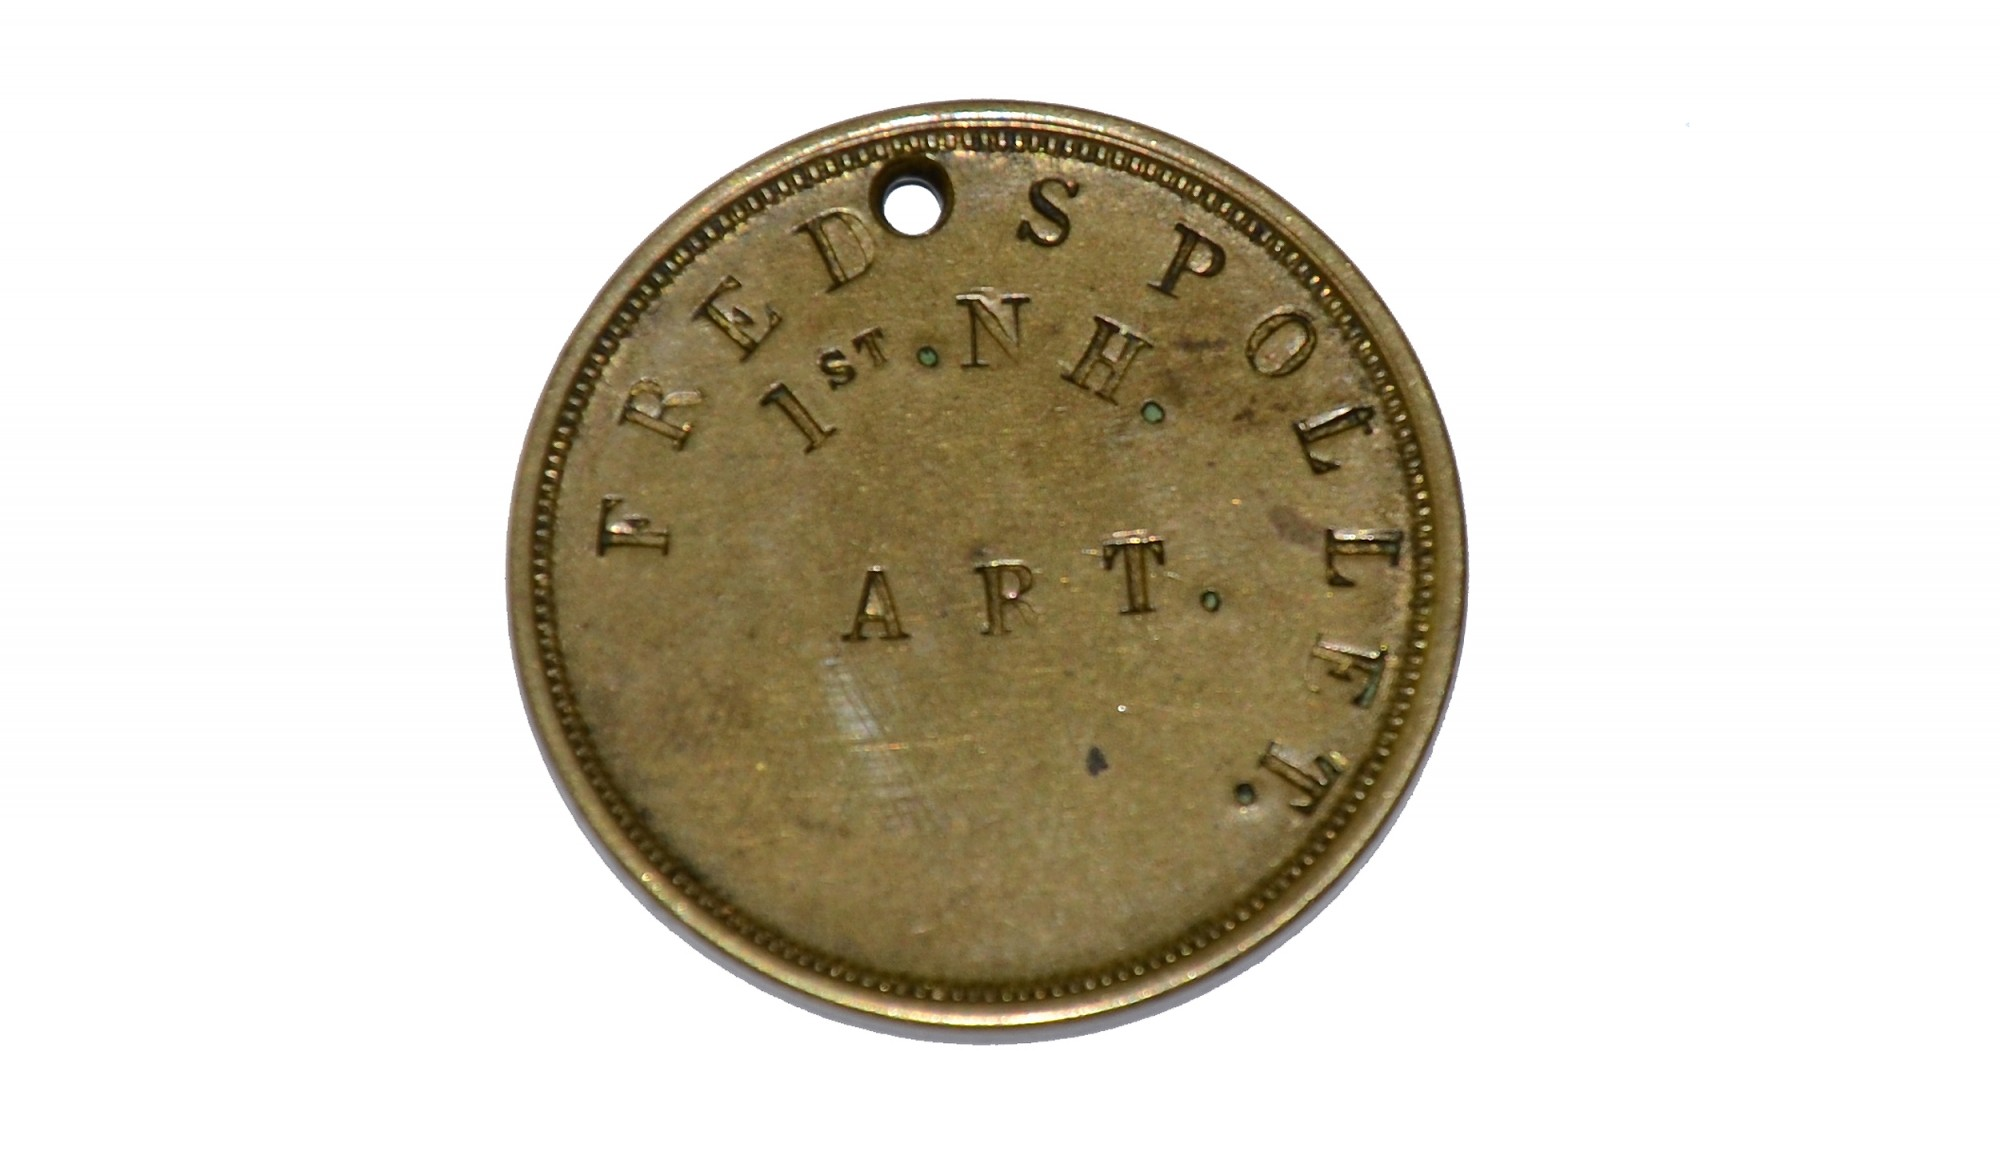 ID TAG FOR 1ST NEW HAMPSHIRE LIGHT ARTILLERY SOLDIER